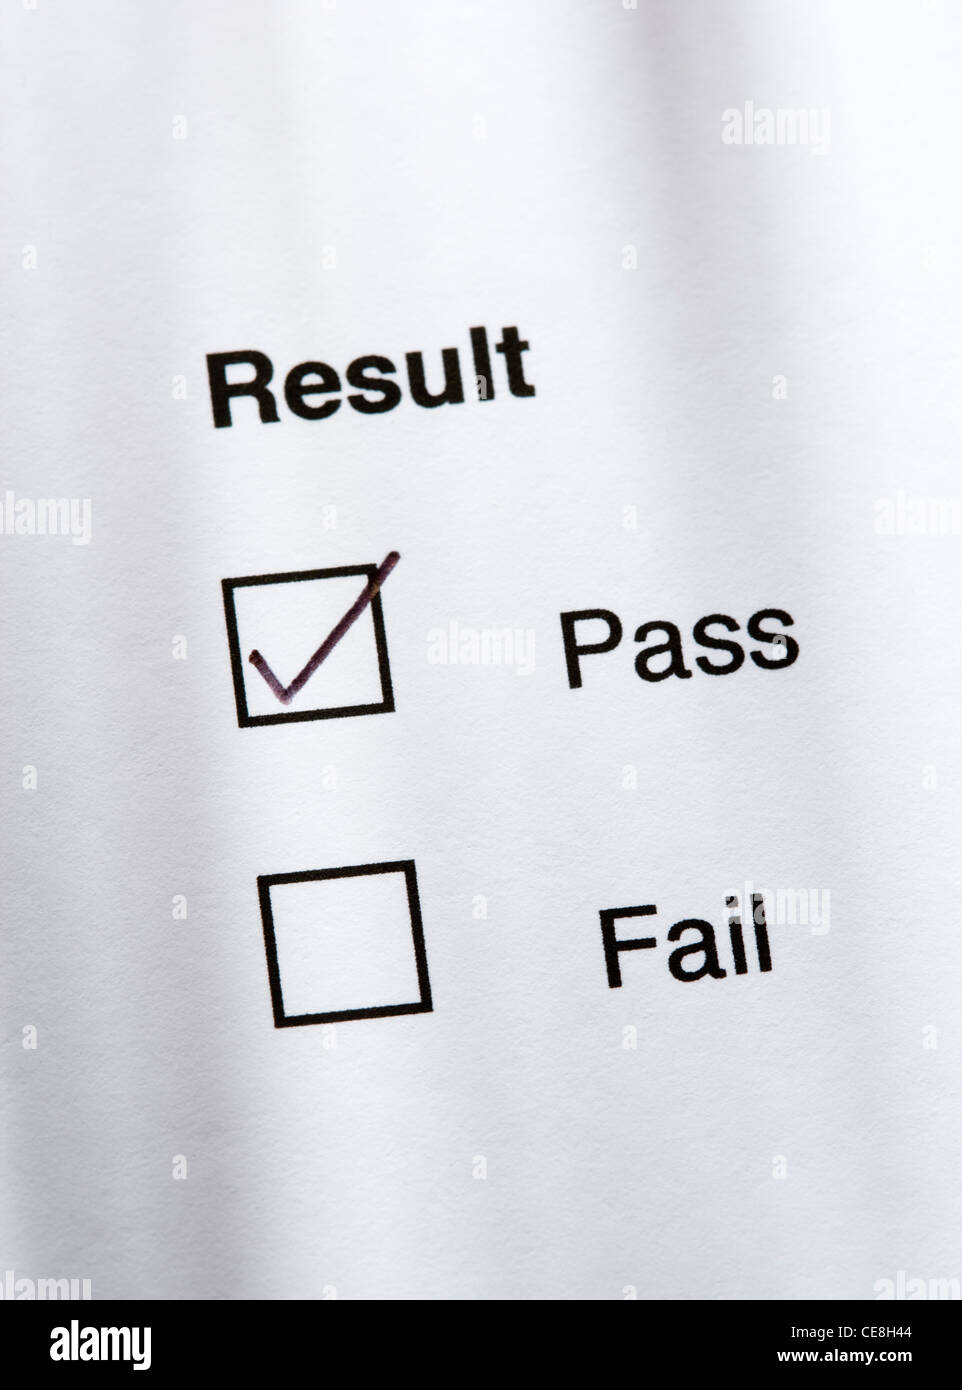 Result - pass. - Stock Image